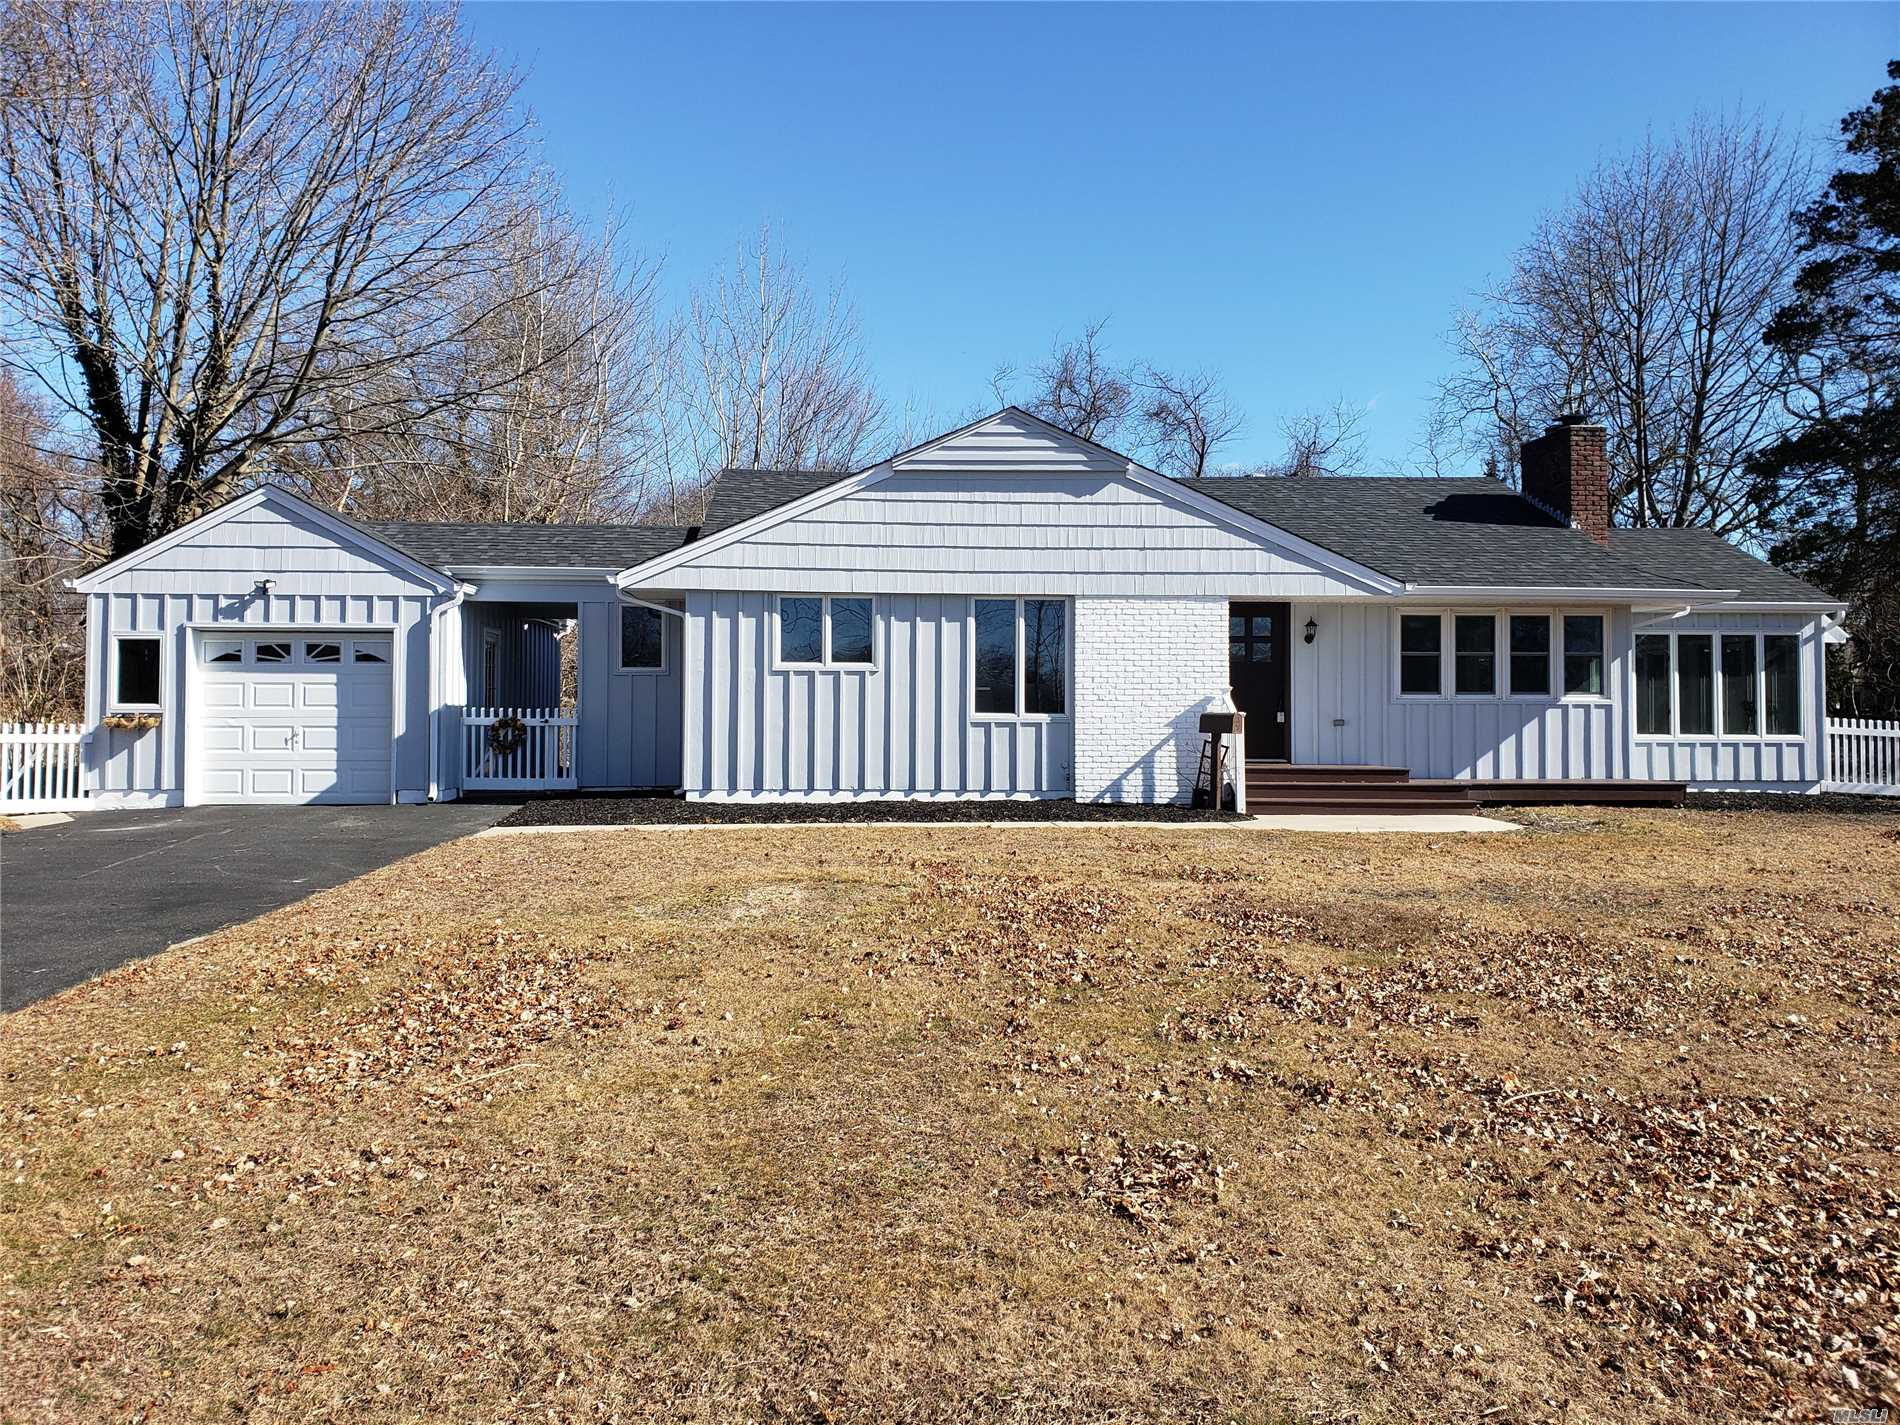 Renovated Home On An A Desirable Tree Lined Block In Sayville With Over An Half Acre Of Property.  Including New Roof, Bathrooms, Kitchen With Quartz Counter Top, Farm Sink And Breakfast Nook . Has Fireplace With Shiplap,  Hardwood Floors And Crown Molding. New Deck Off The Den And A Big Backyard For Entertaining!